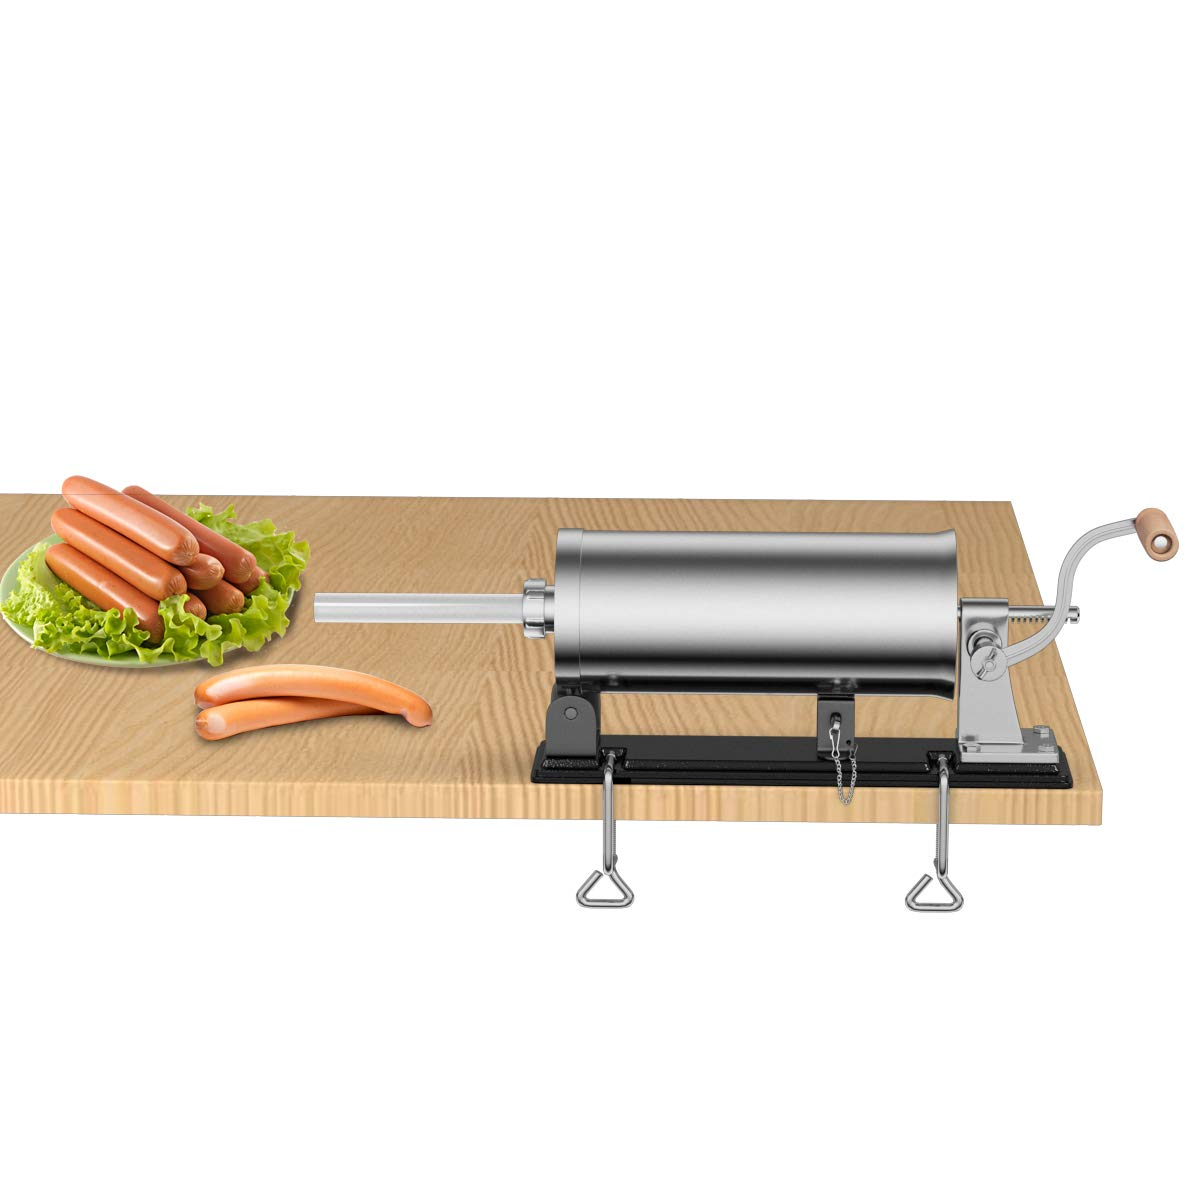 Goplus 6Lb/3.6L Horizontal Sausage Stuffer Maker Stainless Steel Meat Filler Kit w/ 4 Sizes of Food-Grade Sausage Tubes, Commercial Home Use by Goplus